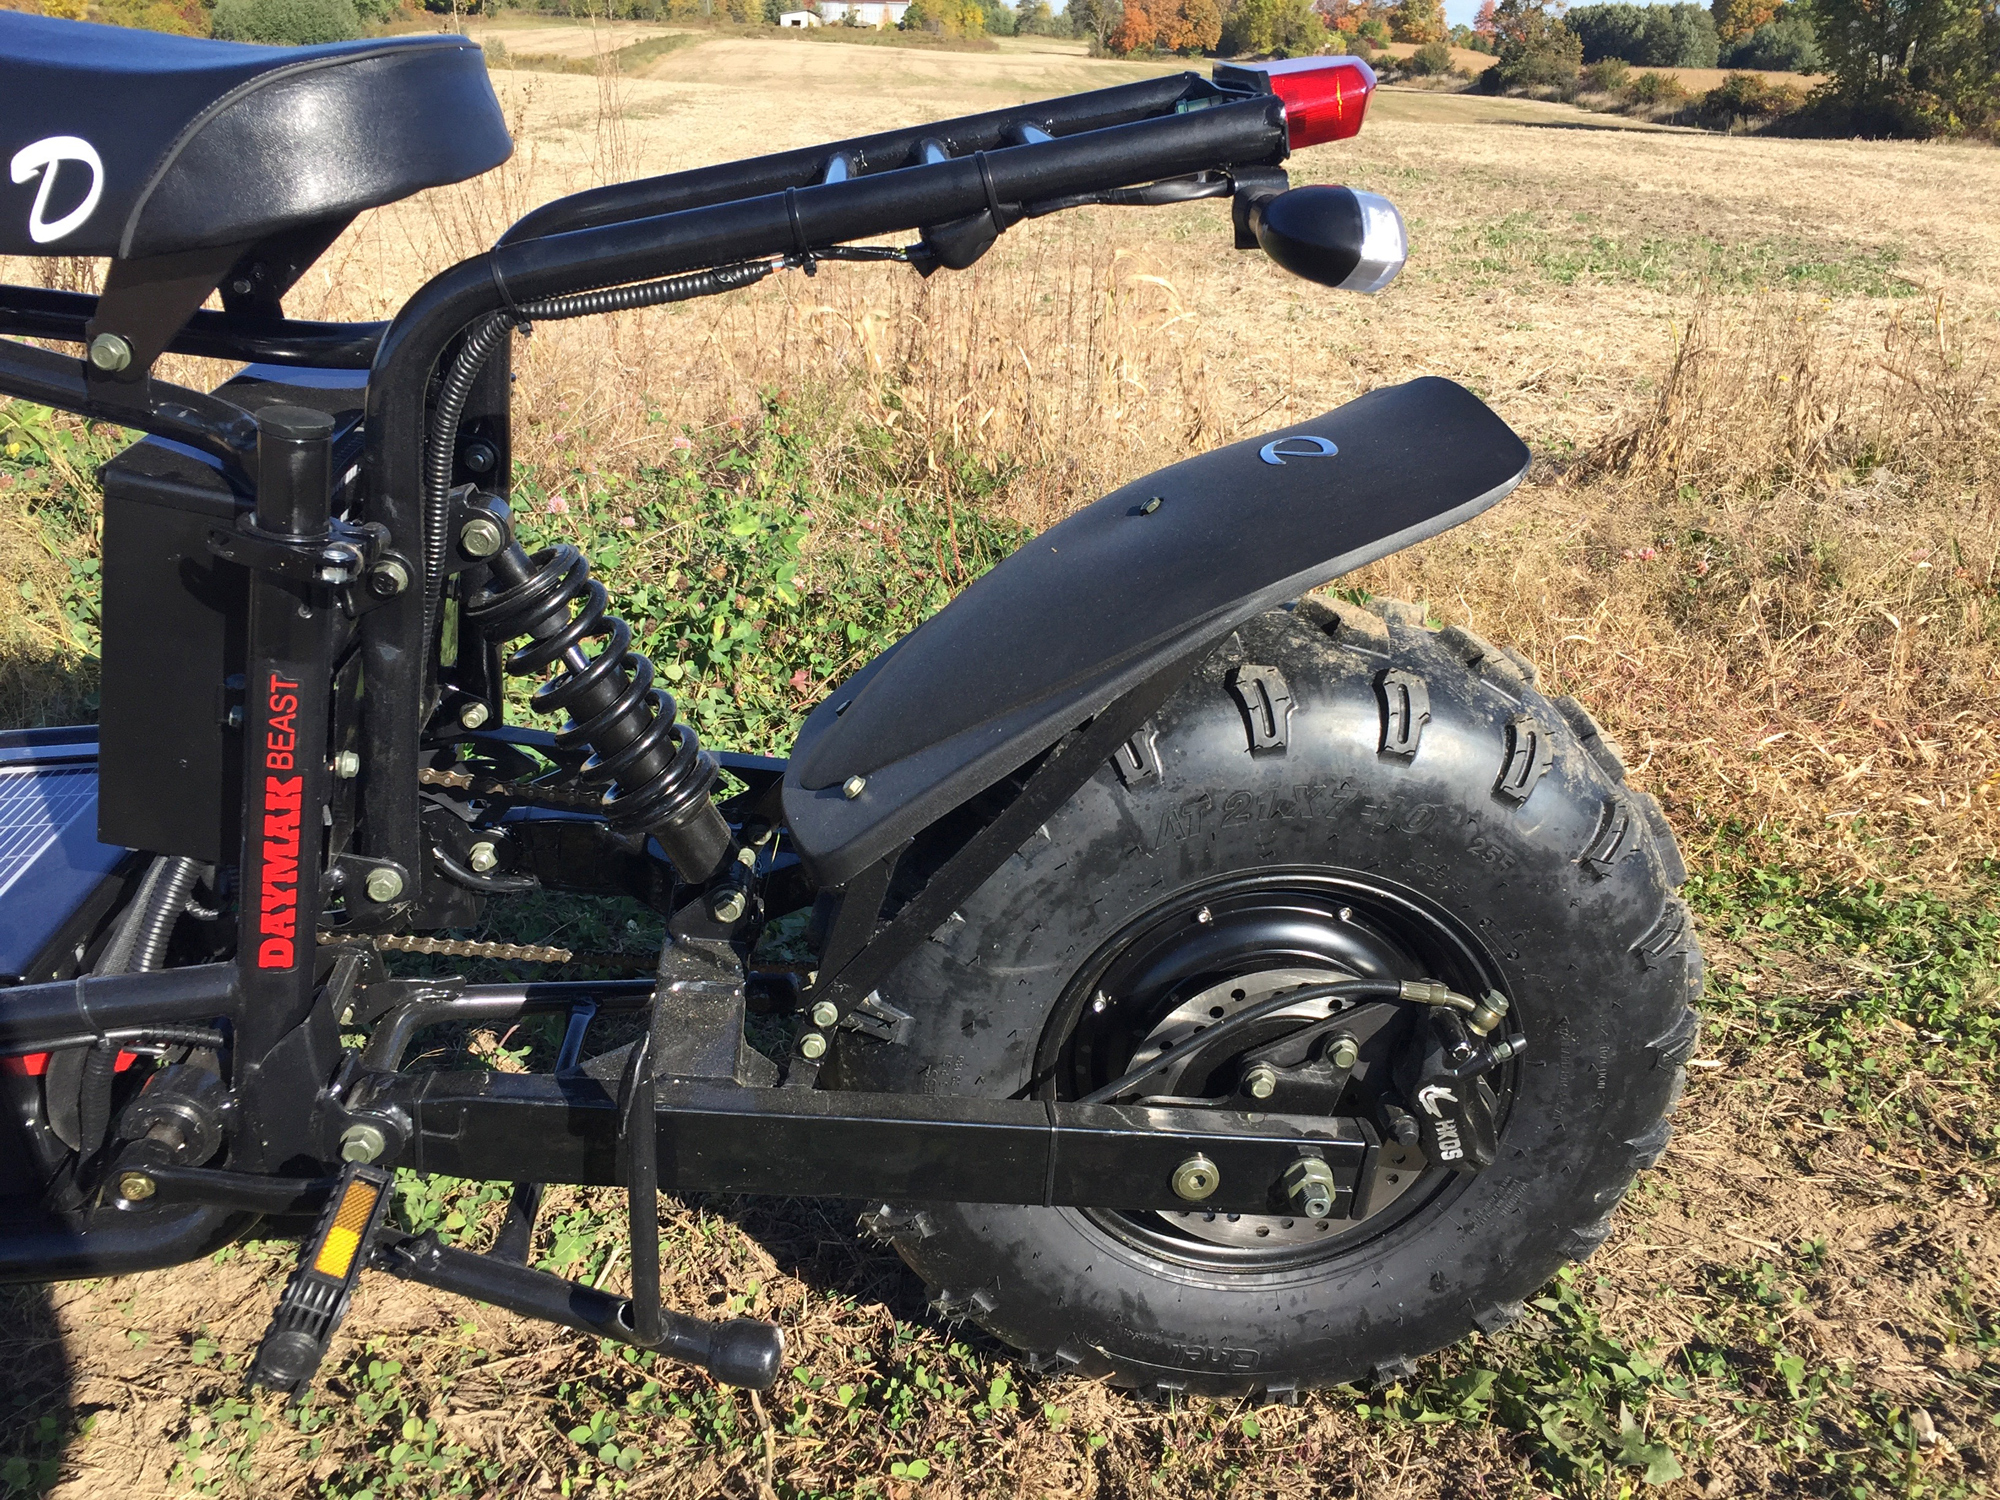 Daymak Beast Standard Review Electric Ride Reviews